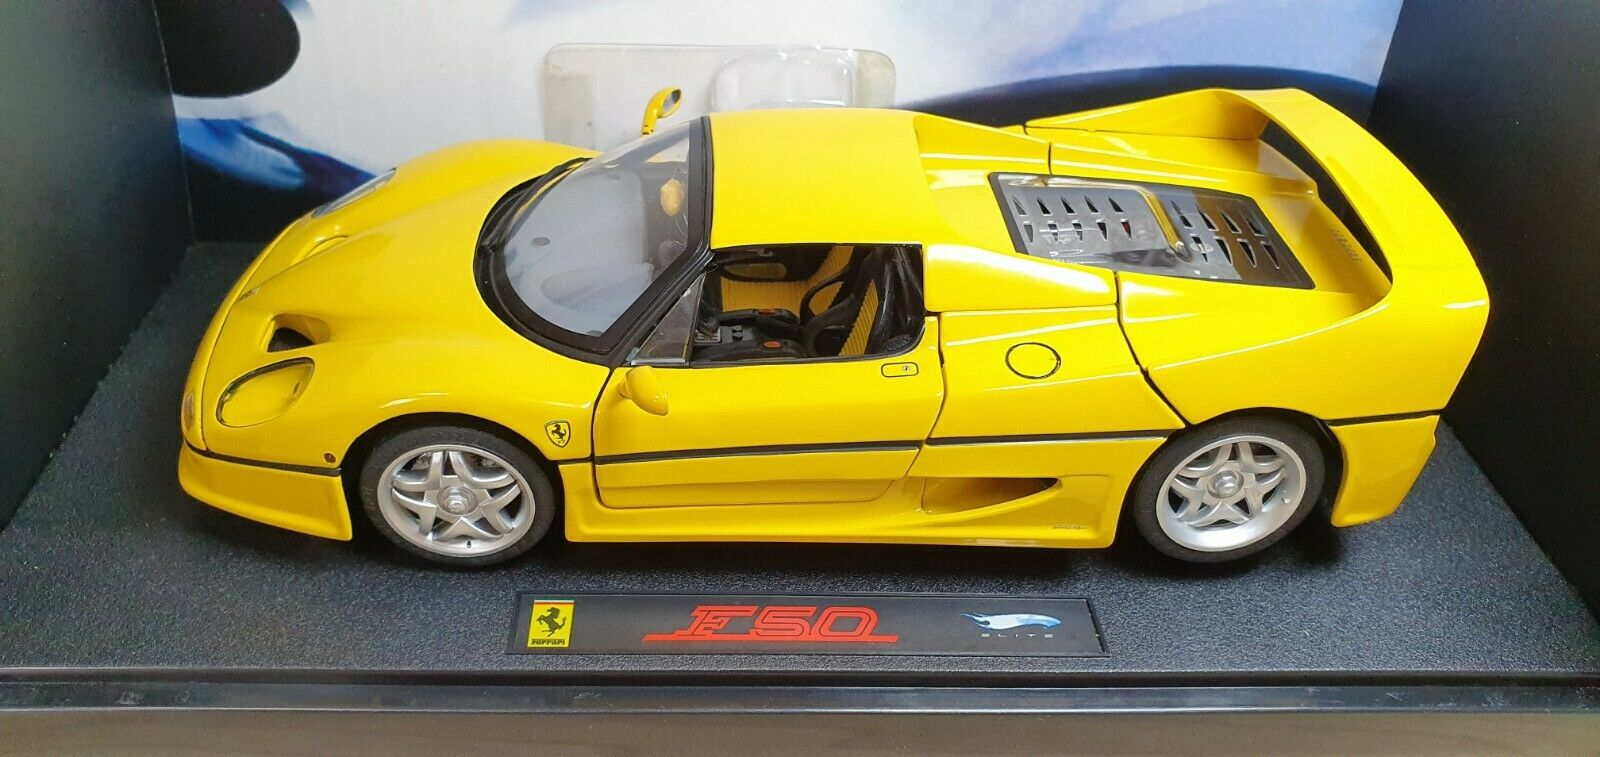 1 18 Hot Wheels Elite FERRARI F50 Gelb diecast car model